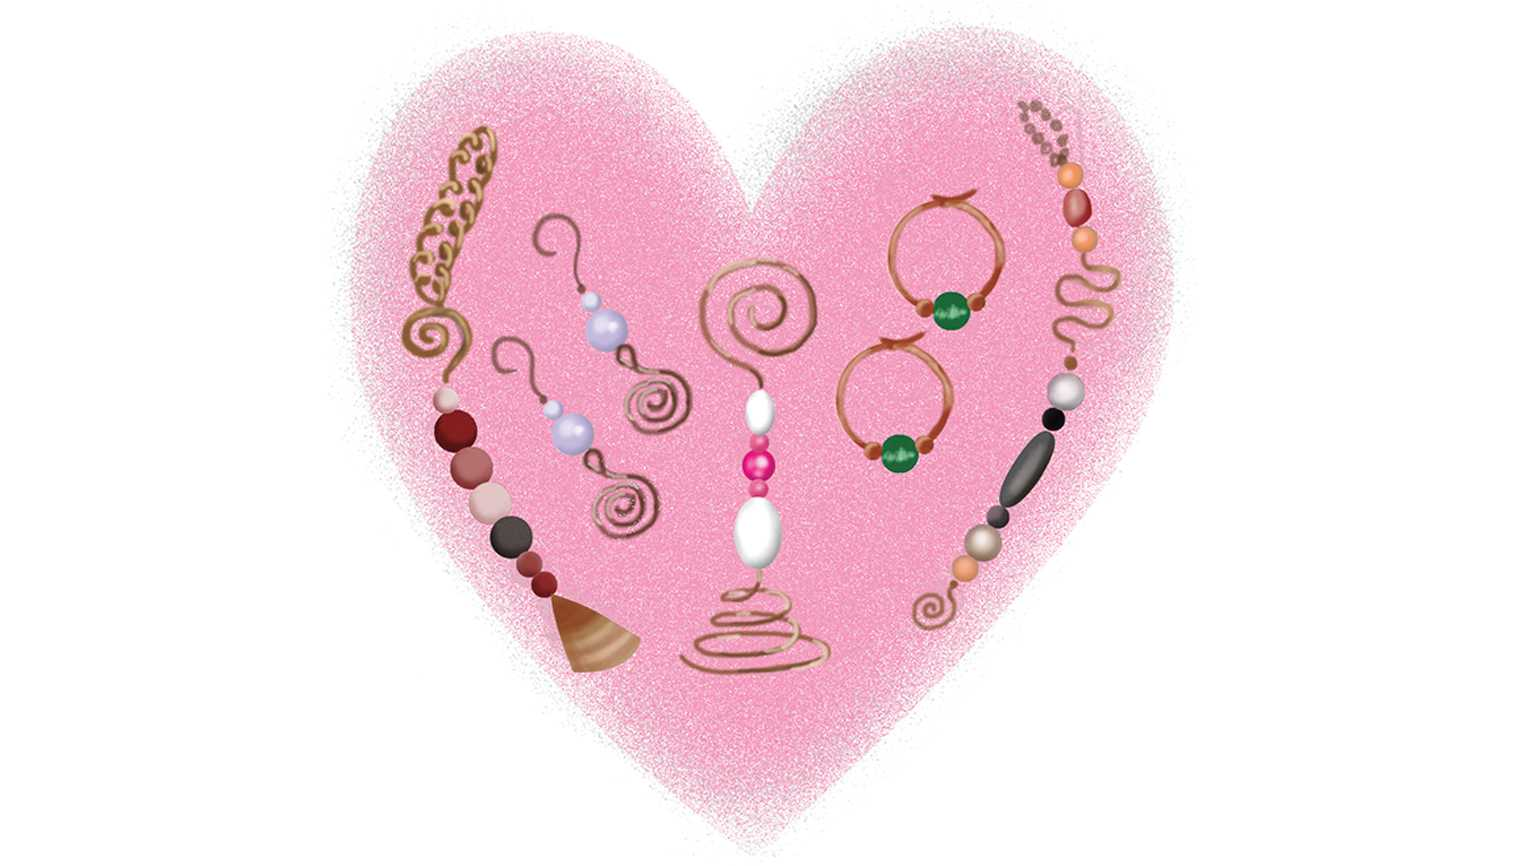 A pink heart with assorted handmade jewelry.